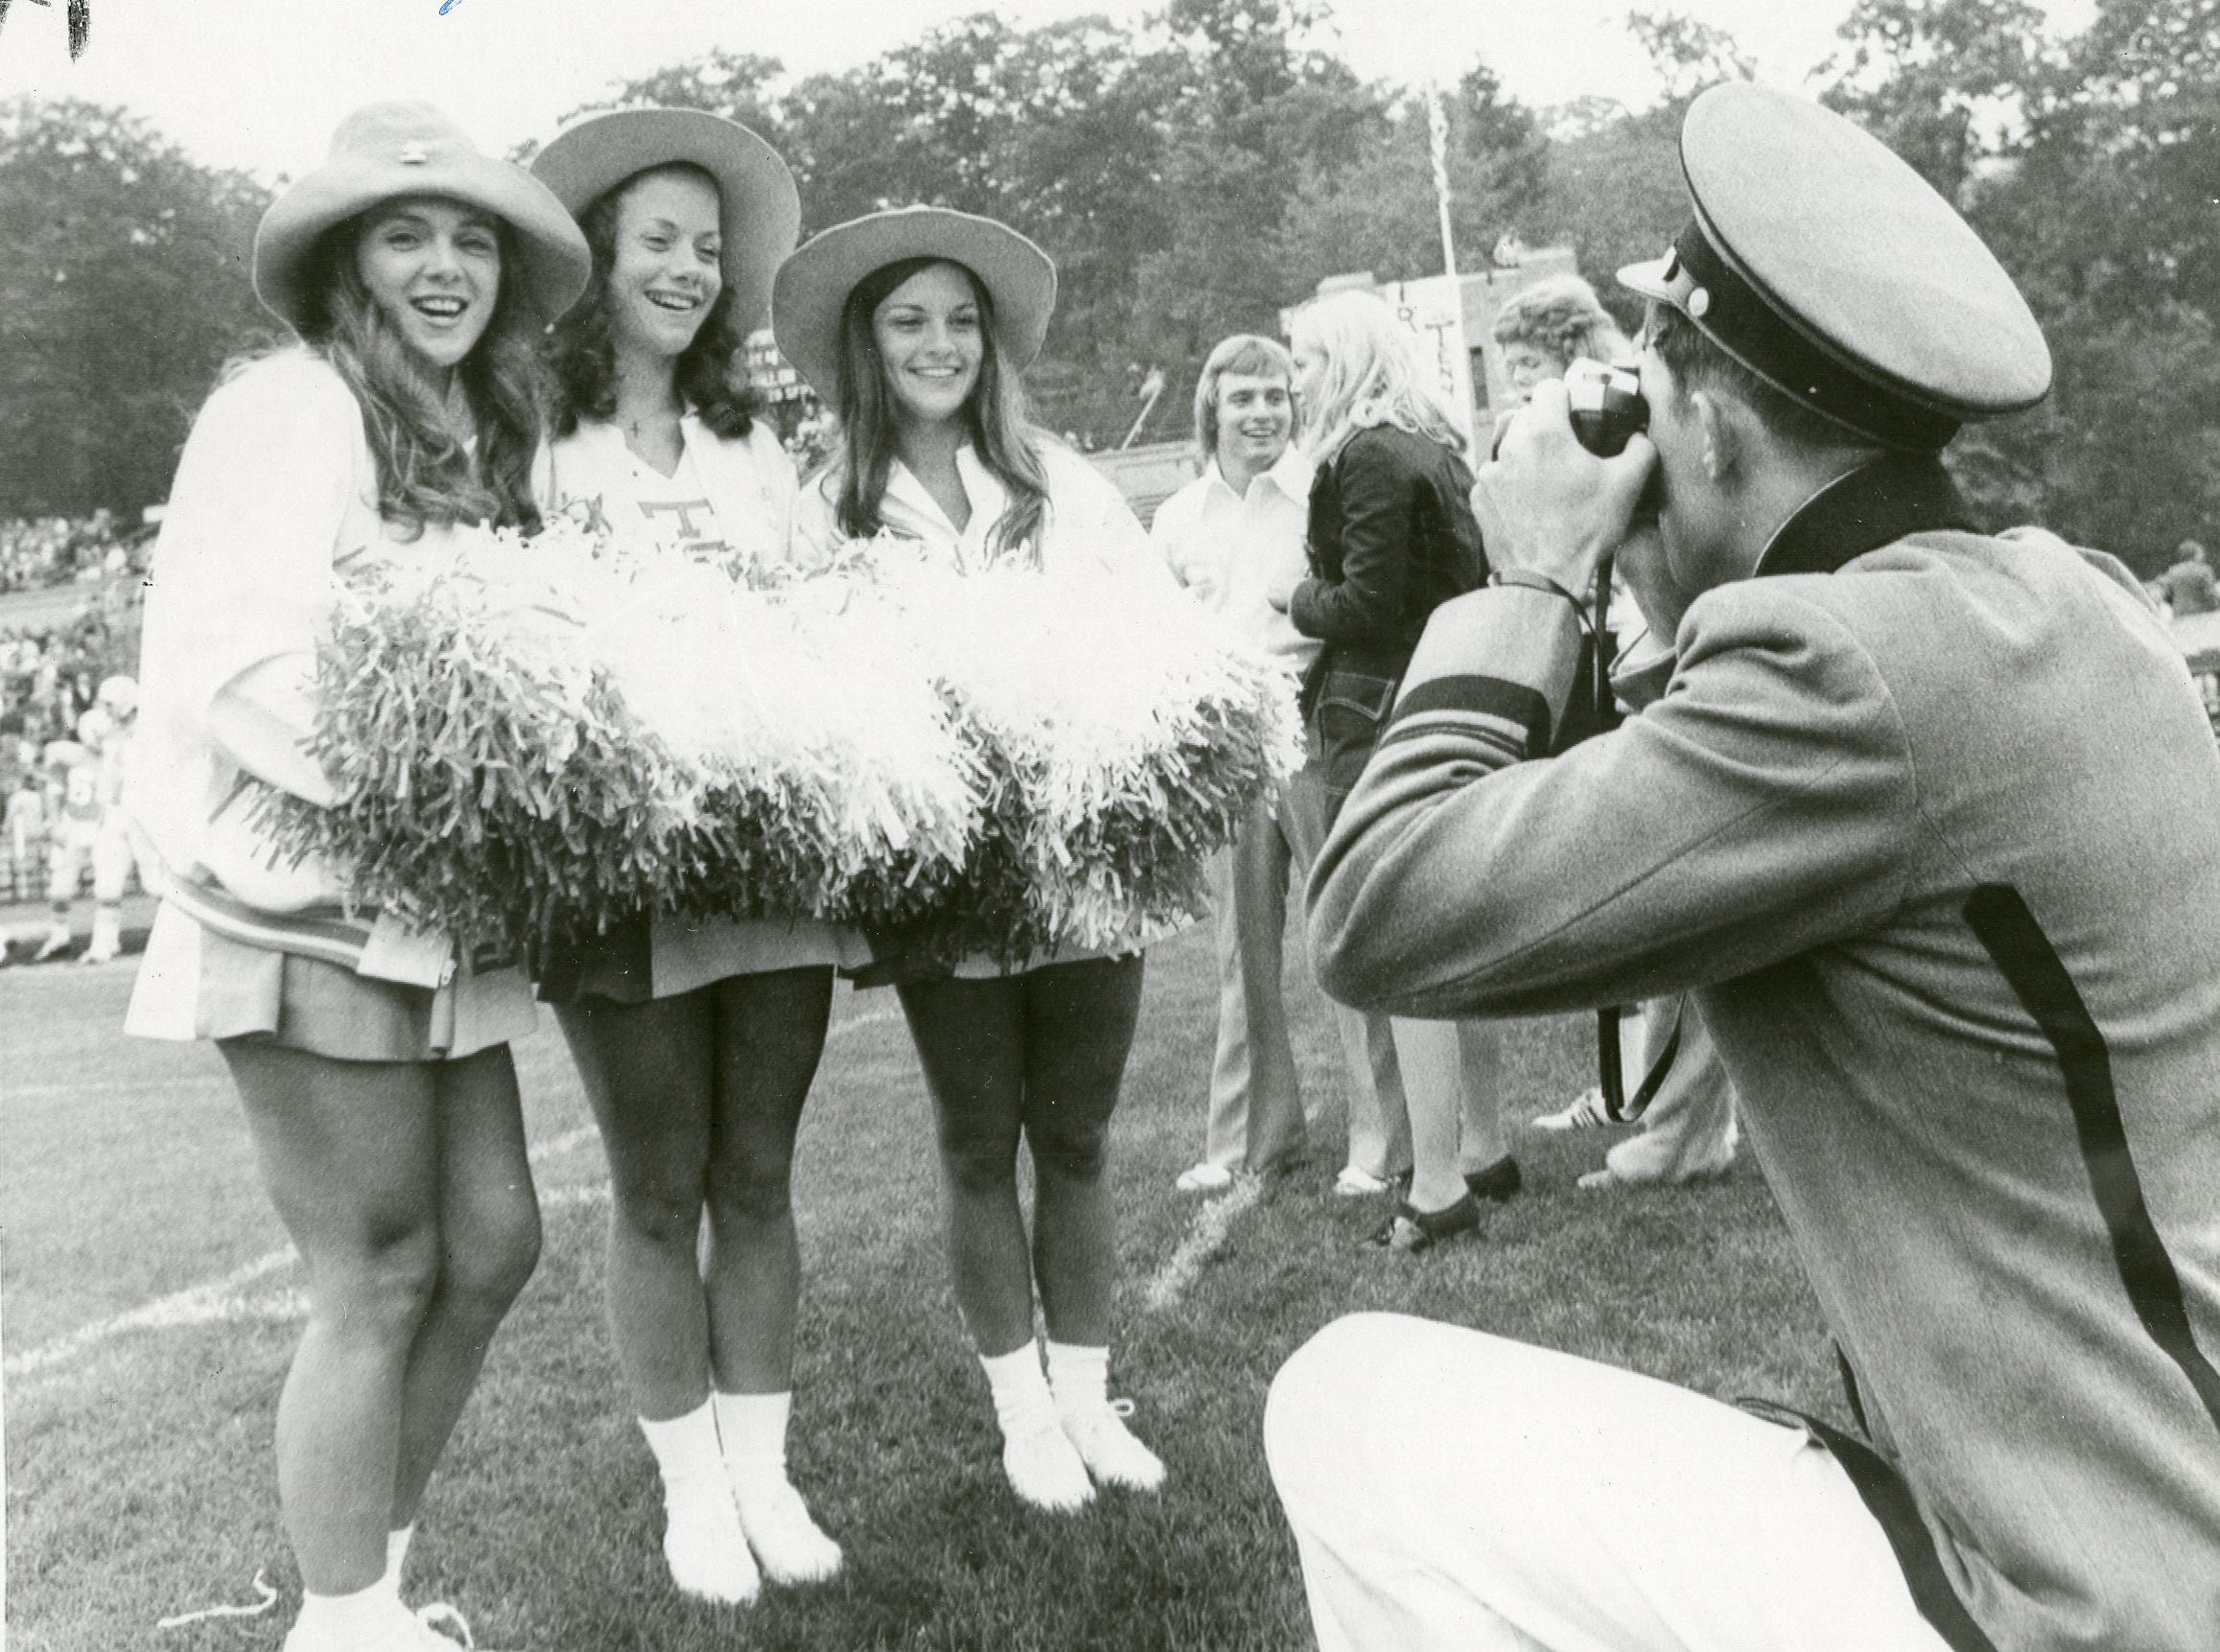 Army cadet Larry Gibbs takes a photo of UT cheerleaders Cyndy Smith, Paula Byrd and Cindy Green, September, 1973.